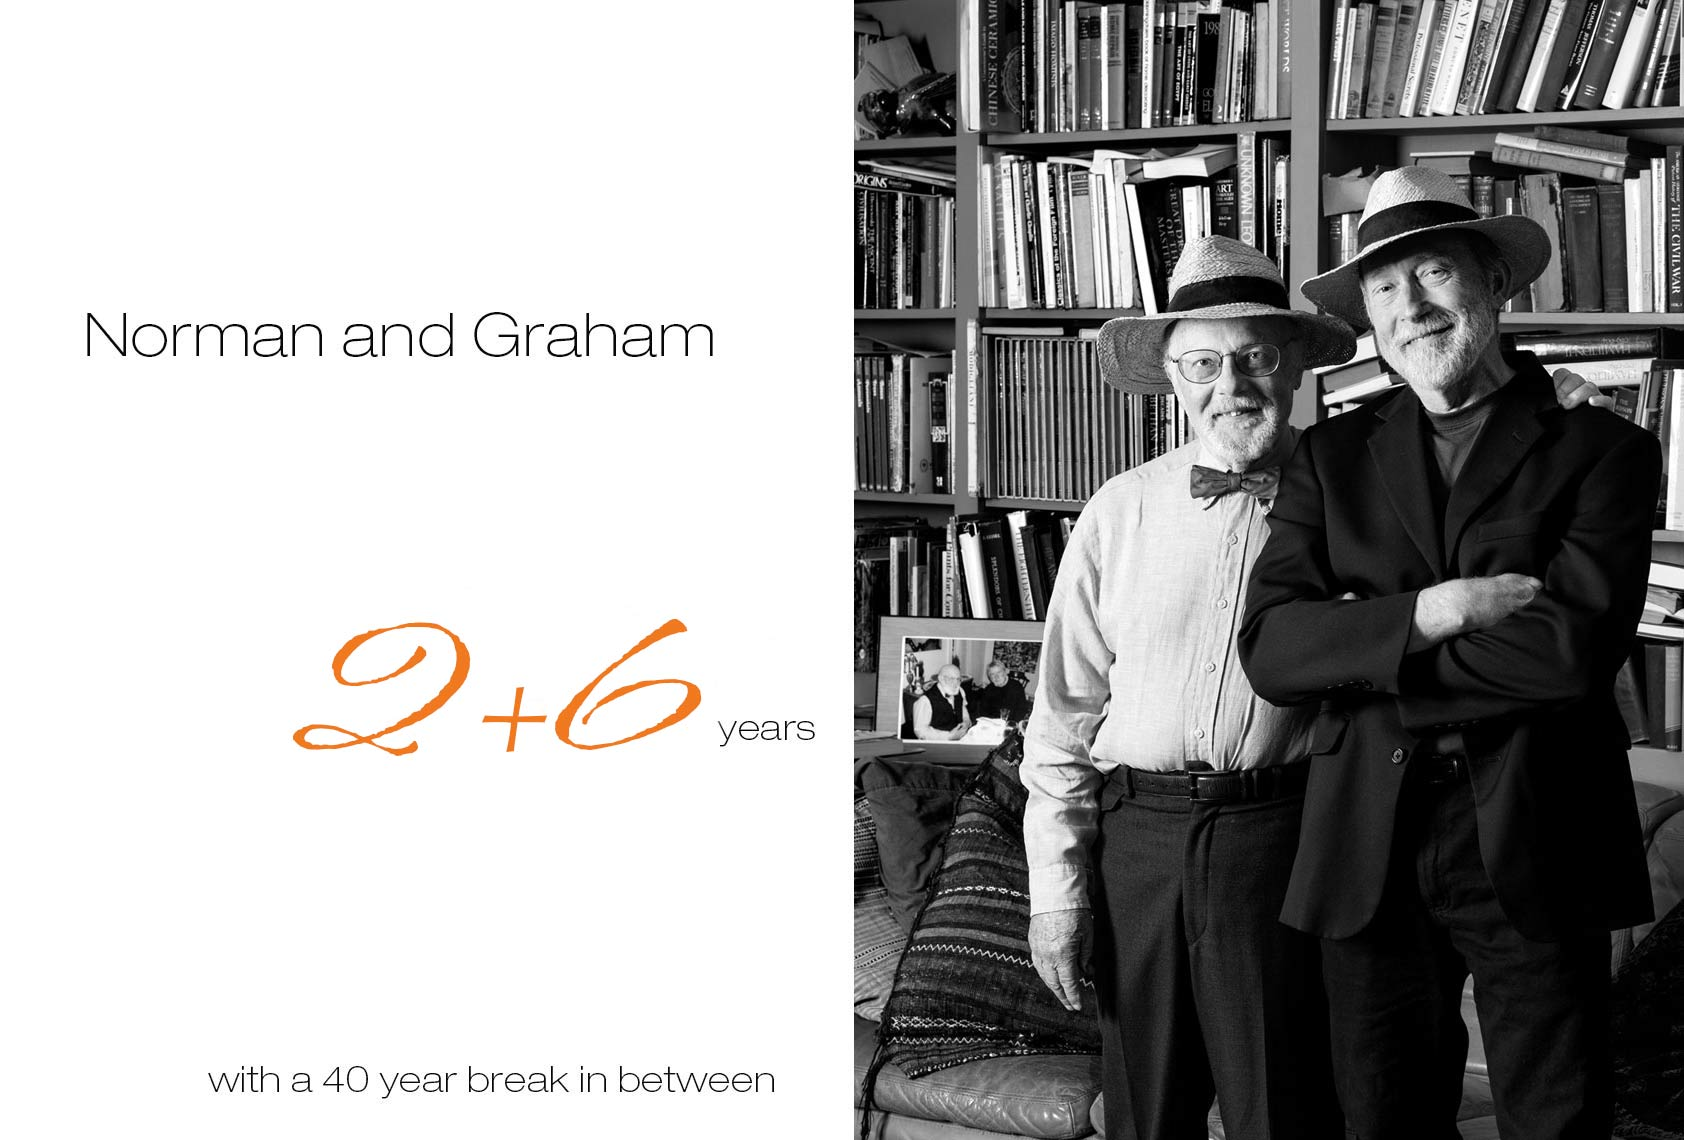 NormanandGraham_2-6yrs